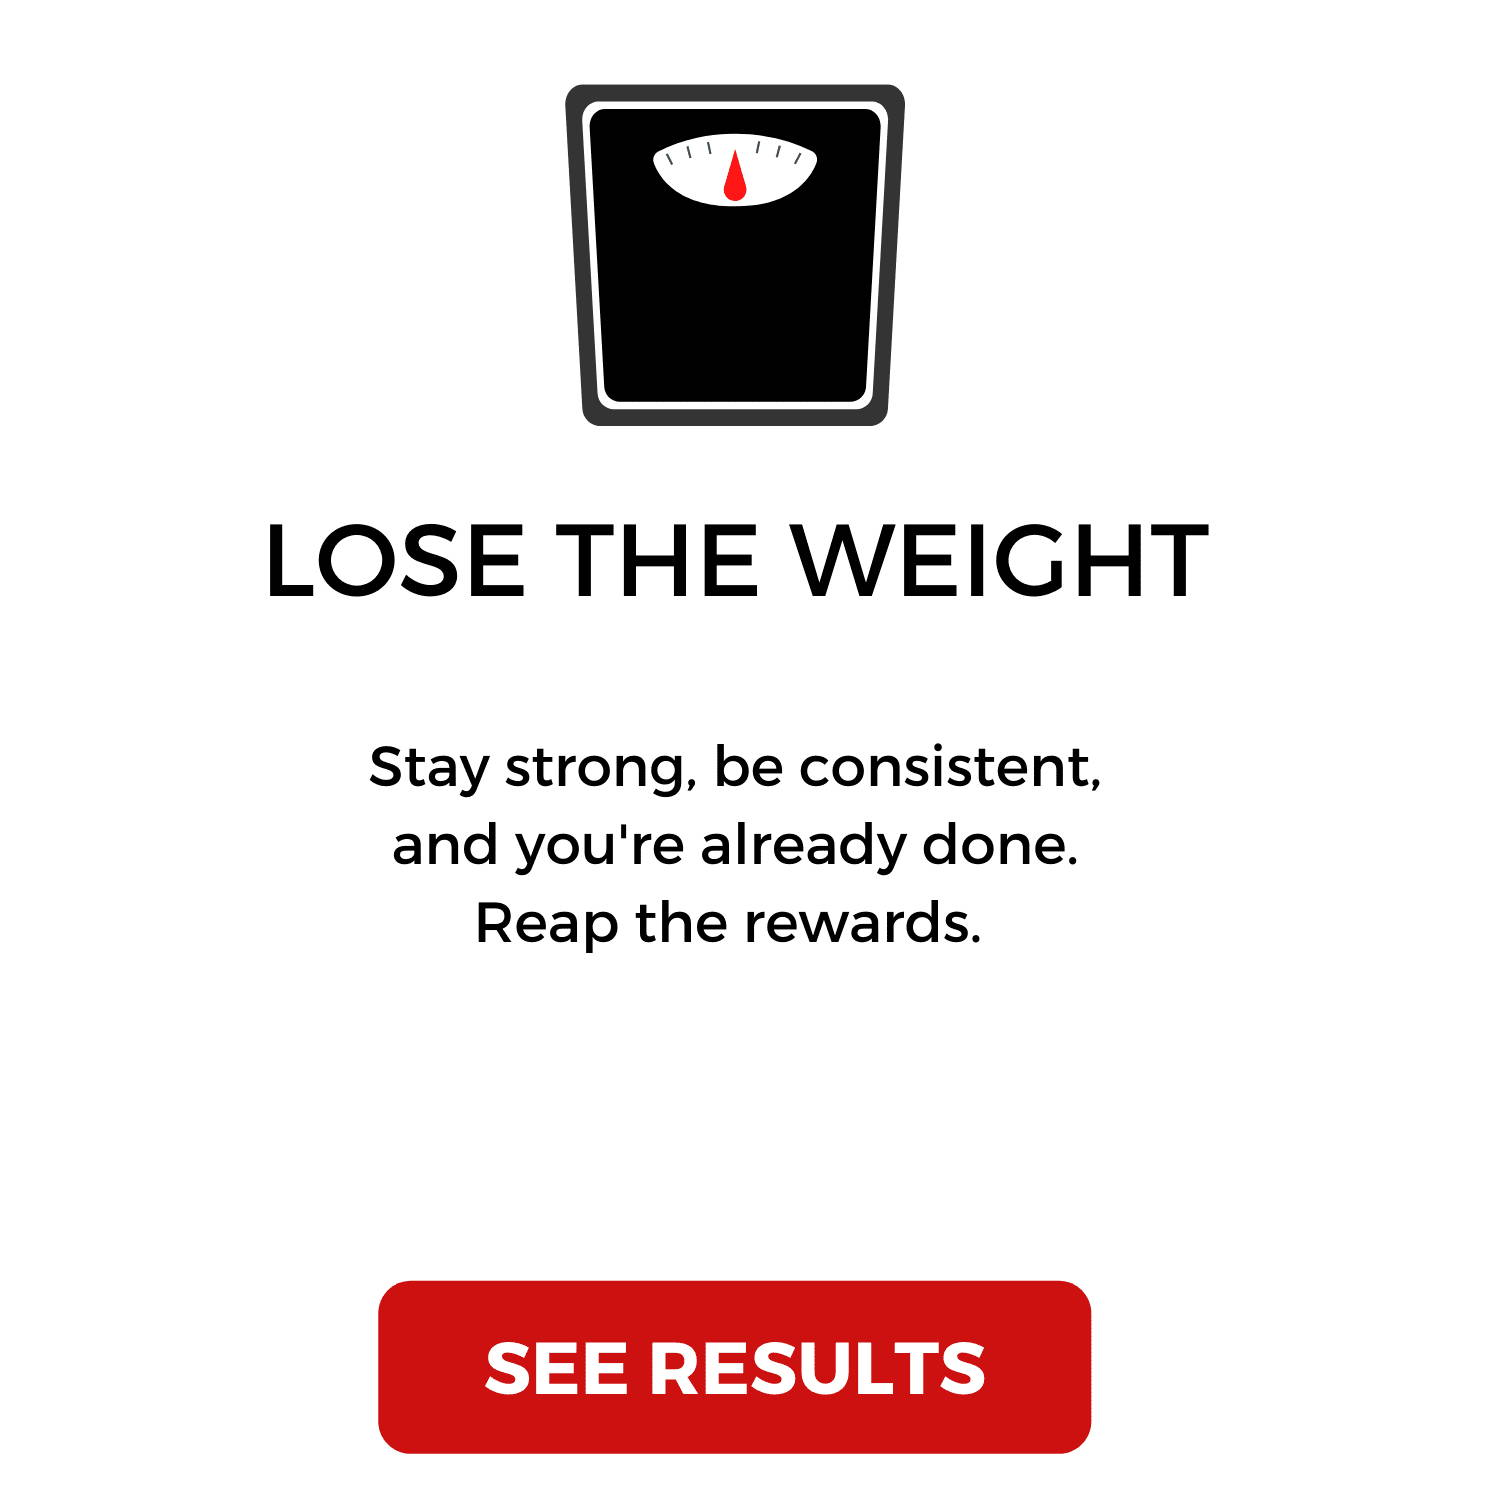 Fastblast smoothie lose the weight how it works